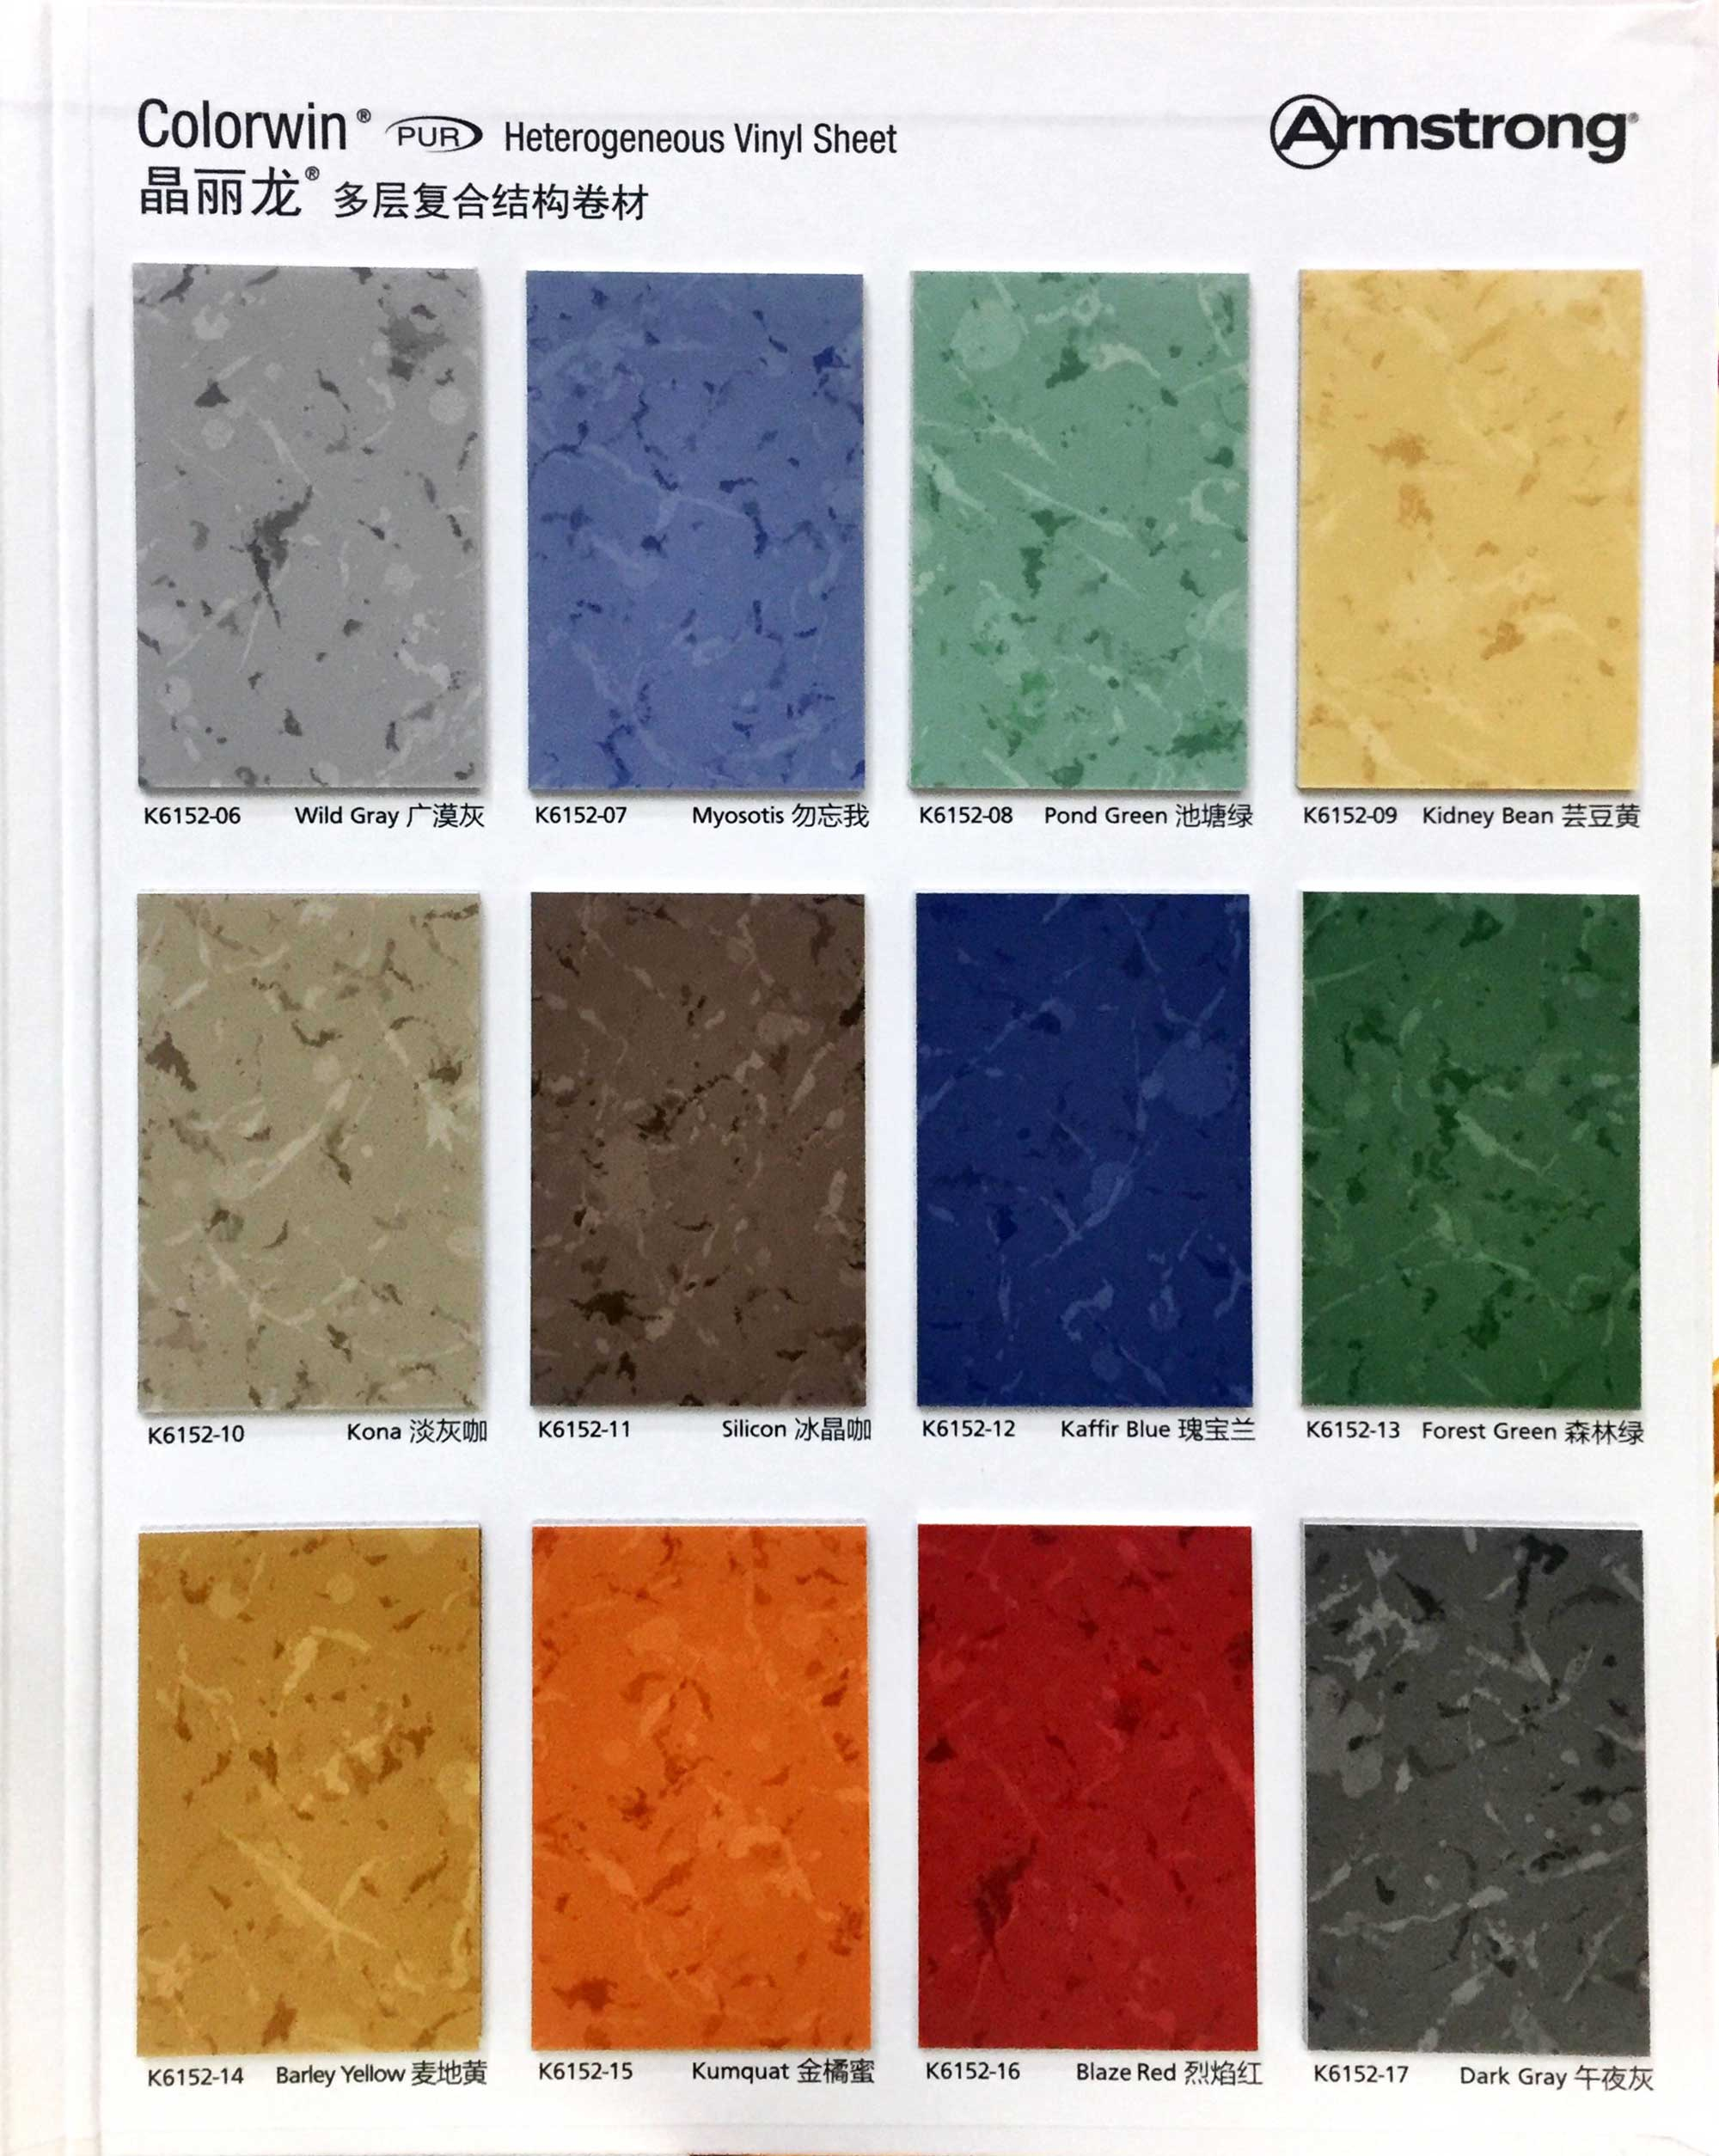 Armstrong Colorwin Heterogeneous Vinyl Sheet Flooring